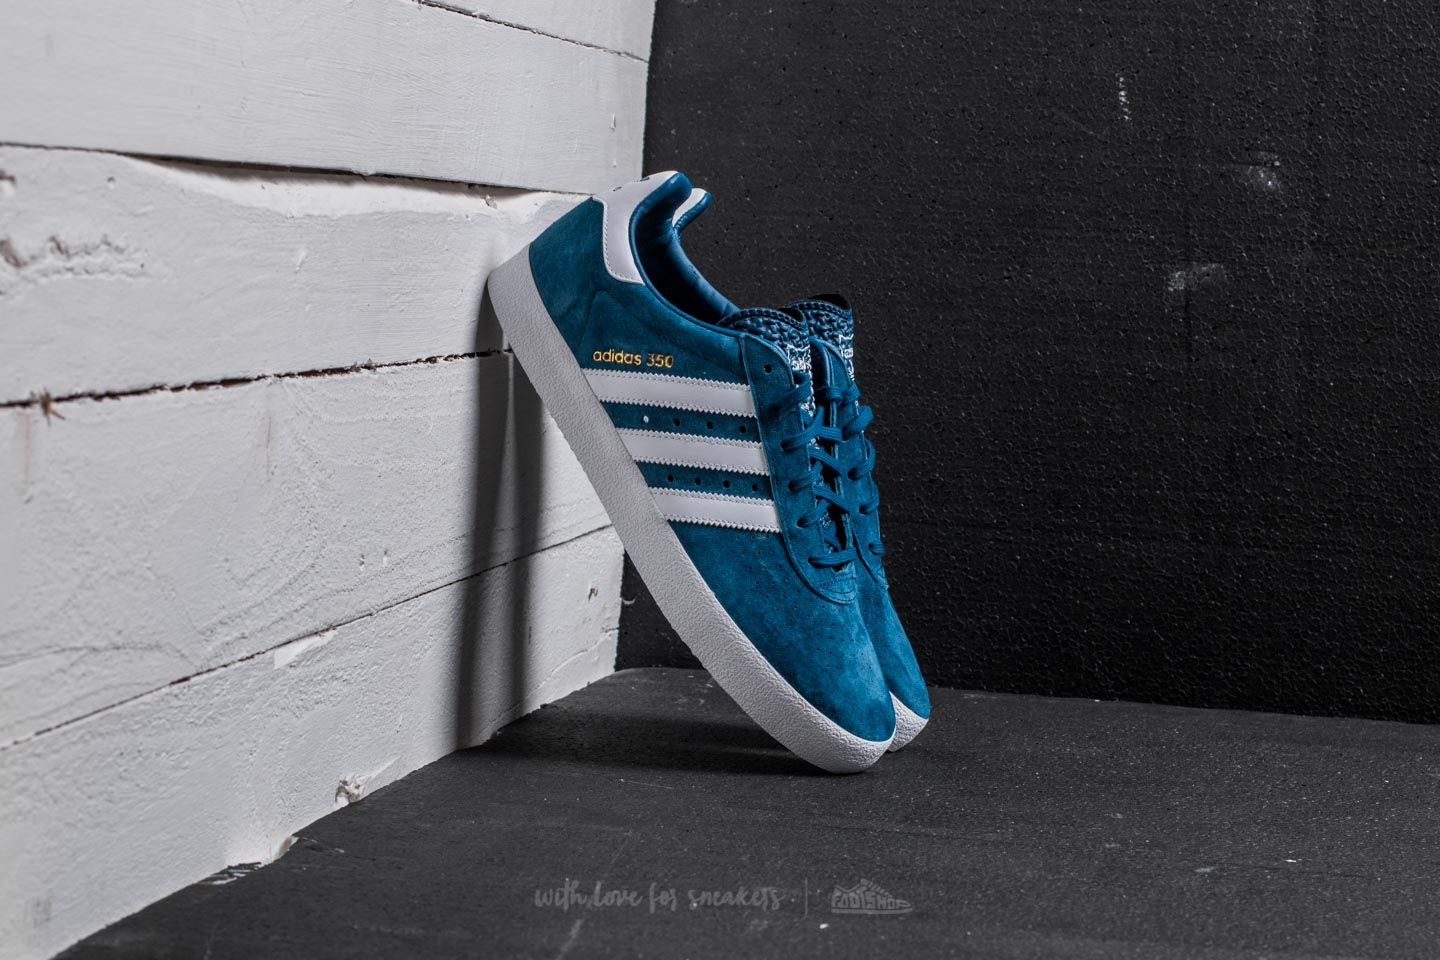 adidas 350 Blue Night/ Ftw White/ Gold Metalic - 20605